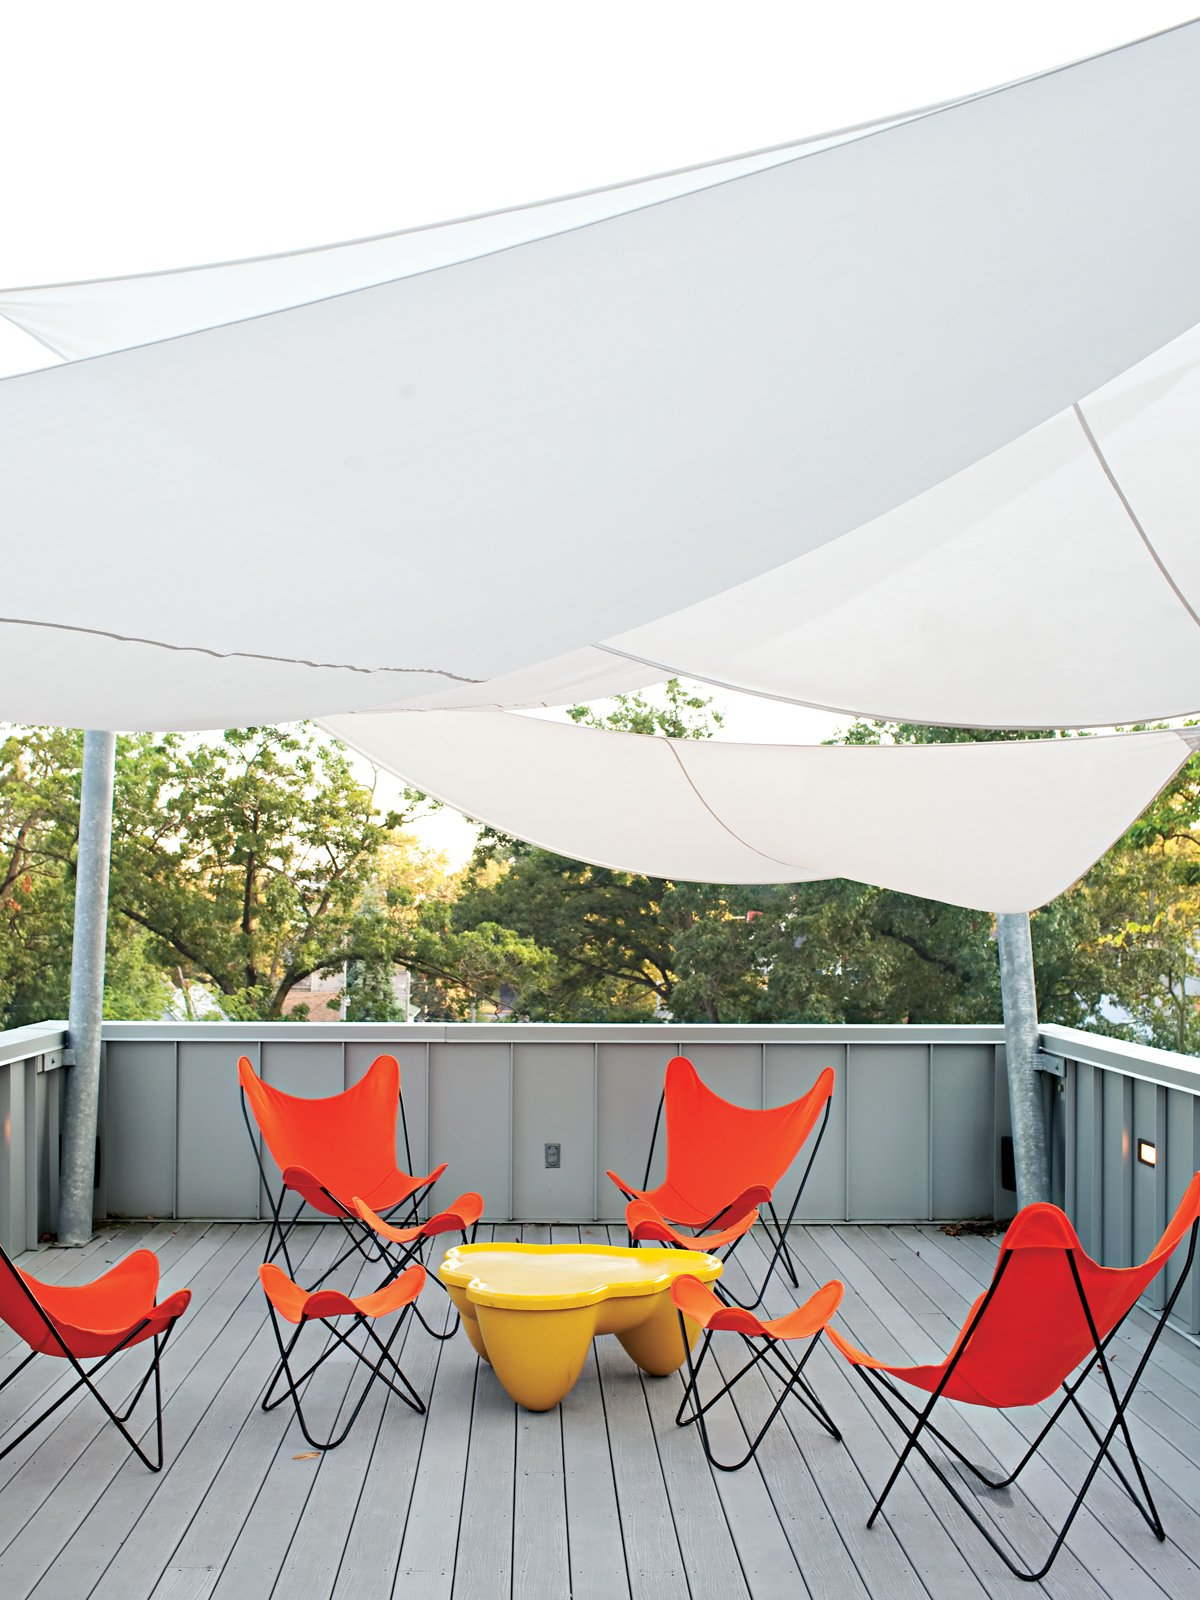 Epic Sail  To reduce heat load and provide shade, DeSalvo initially tracked down a sail system from Sun Shade Australia. But the $6,000 price tag had the architect and contractor designing their own version out of Mermet solar screen fabric. It was fabricated by Covers Unlimited for $1,800.   coversunlimitedinc.com Tagged: Outdoor and Rooftop.  Photo 12 of 25 in Come Sail Away